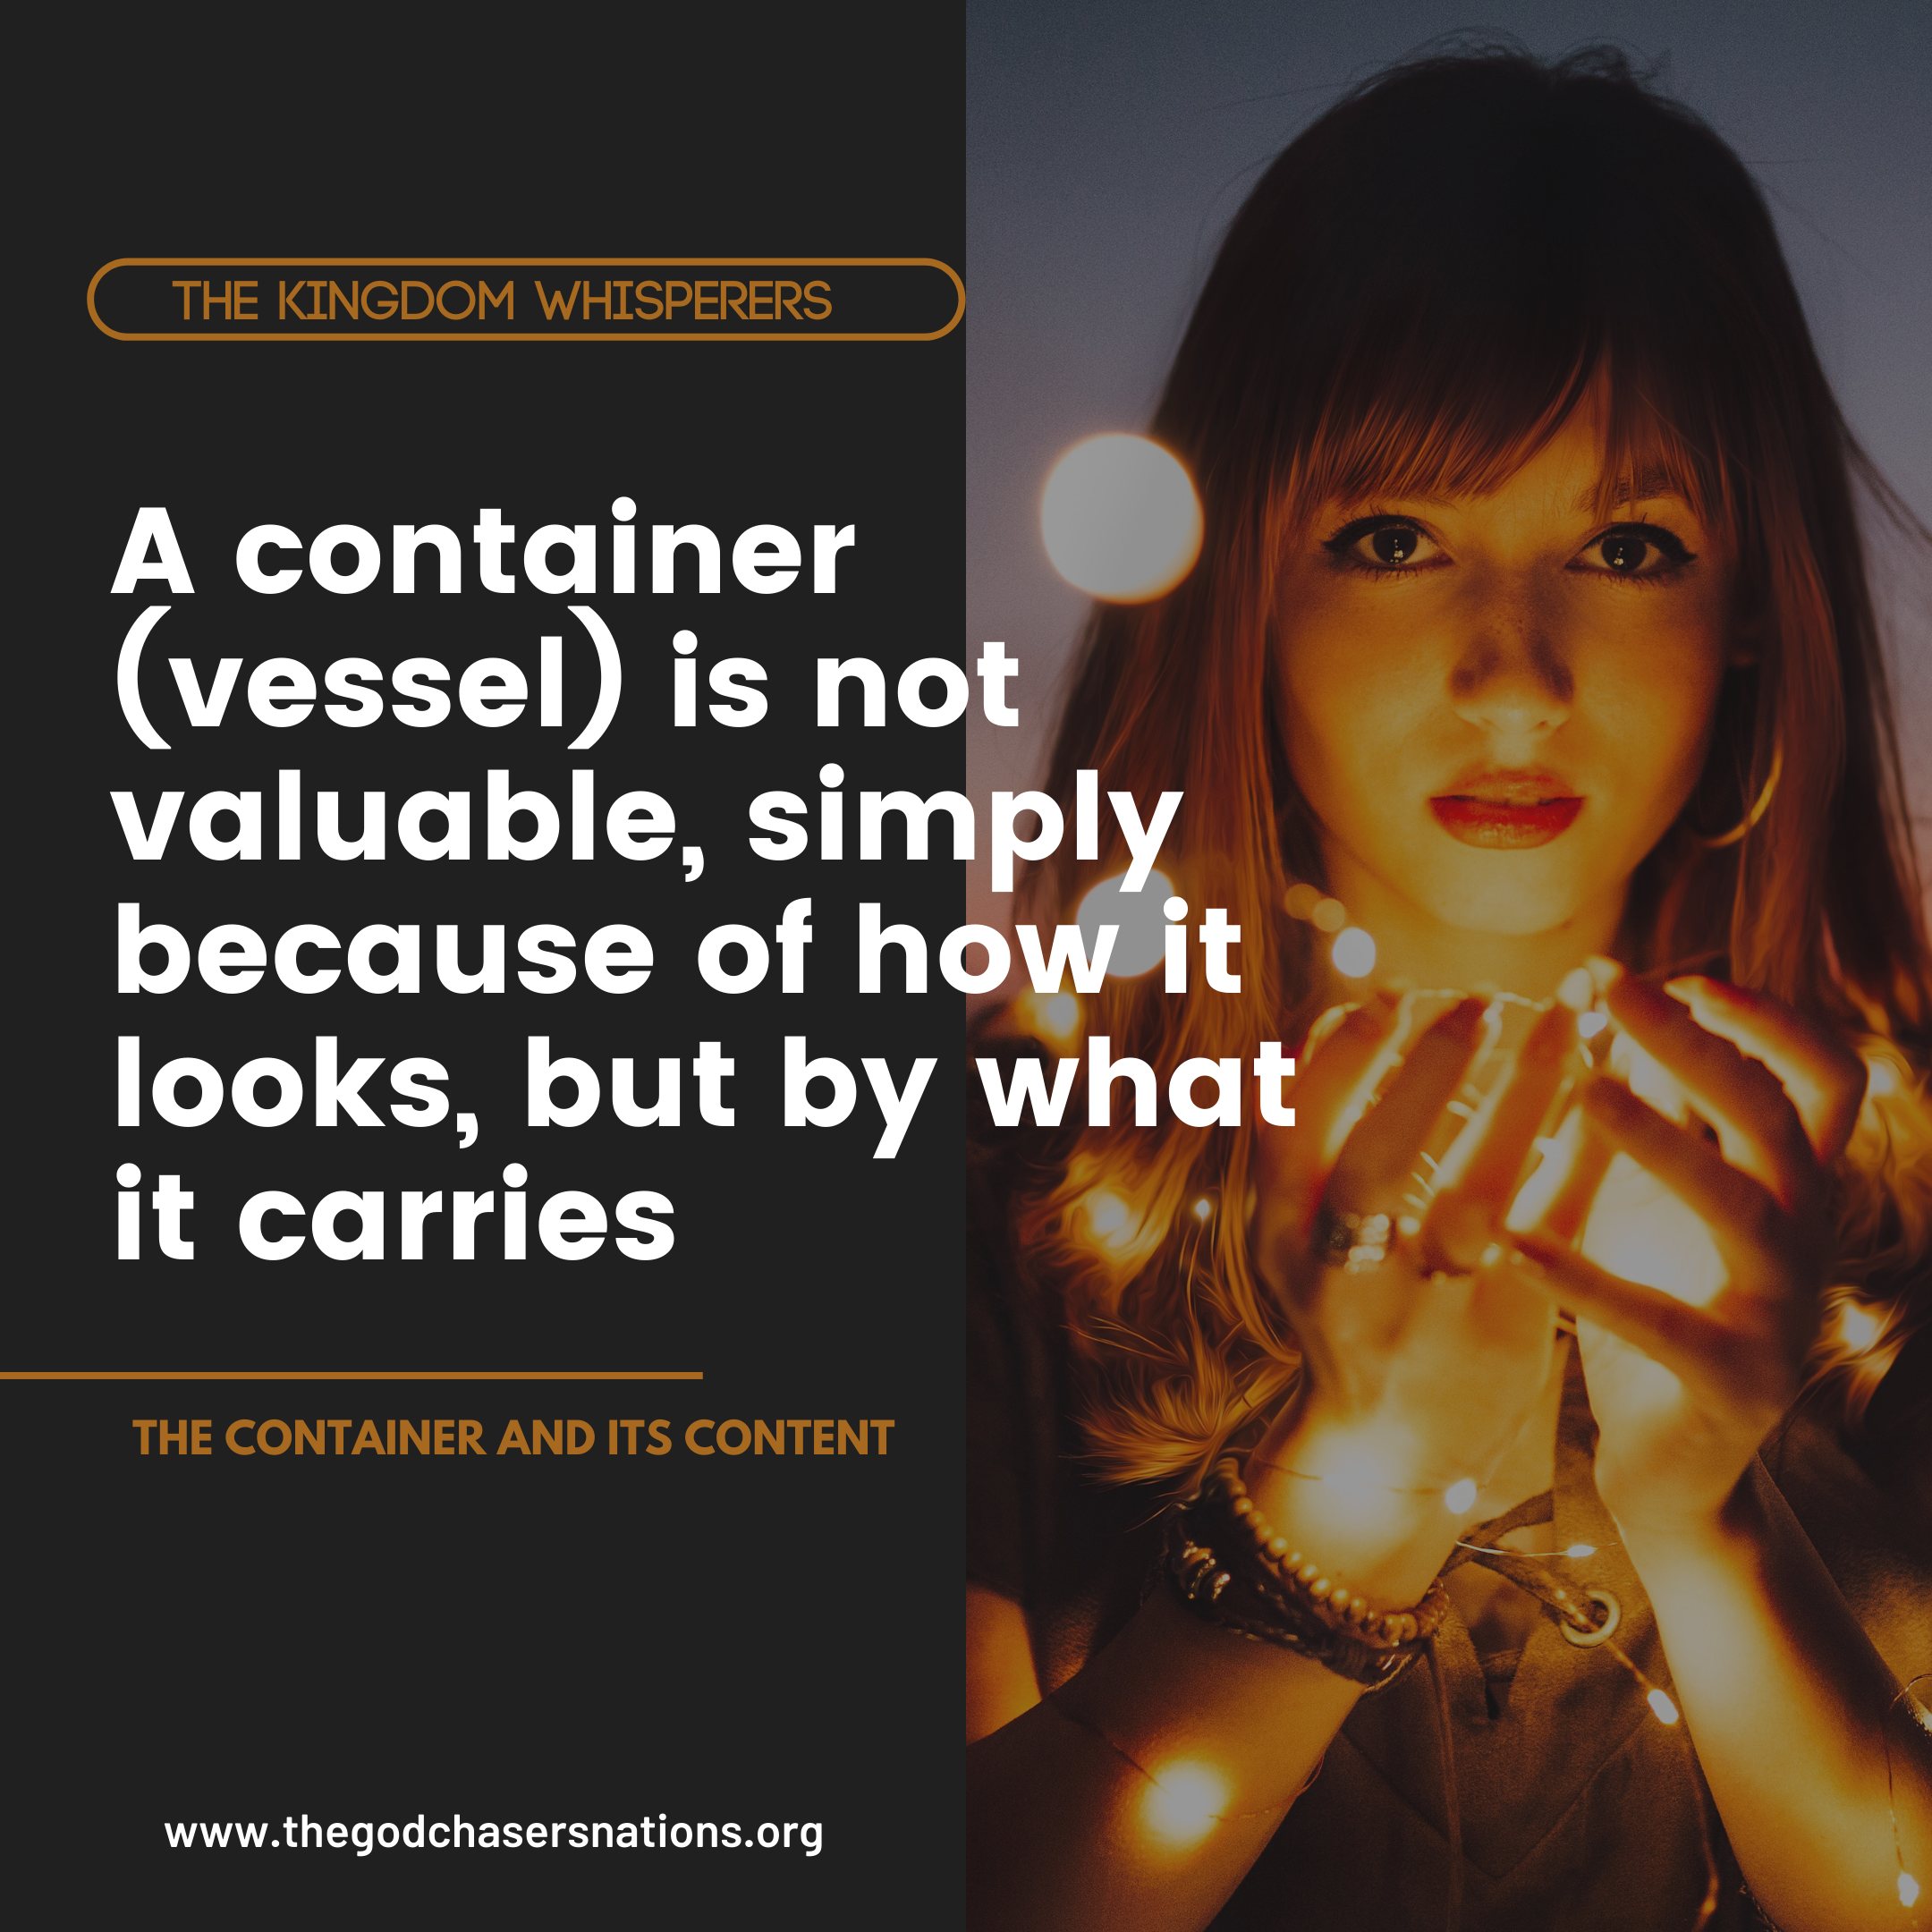 THE CONTAINER AND ITS CONTENT